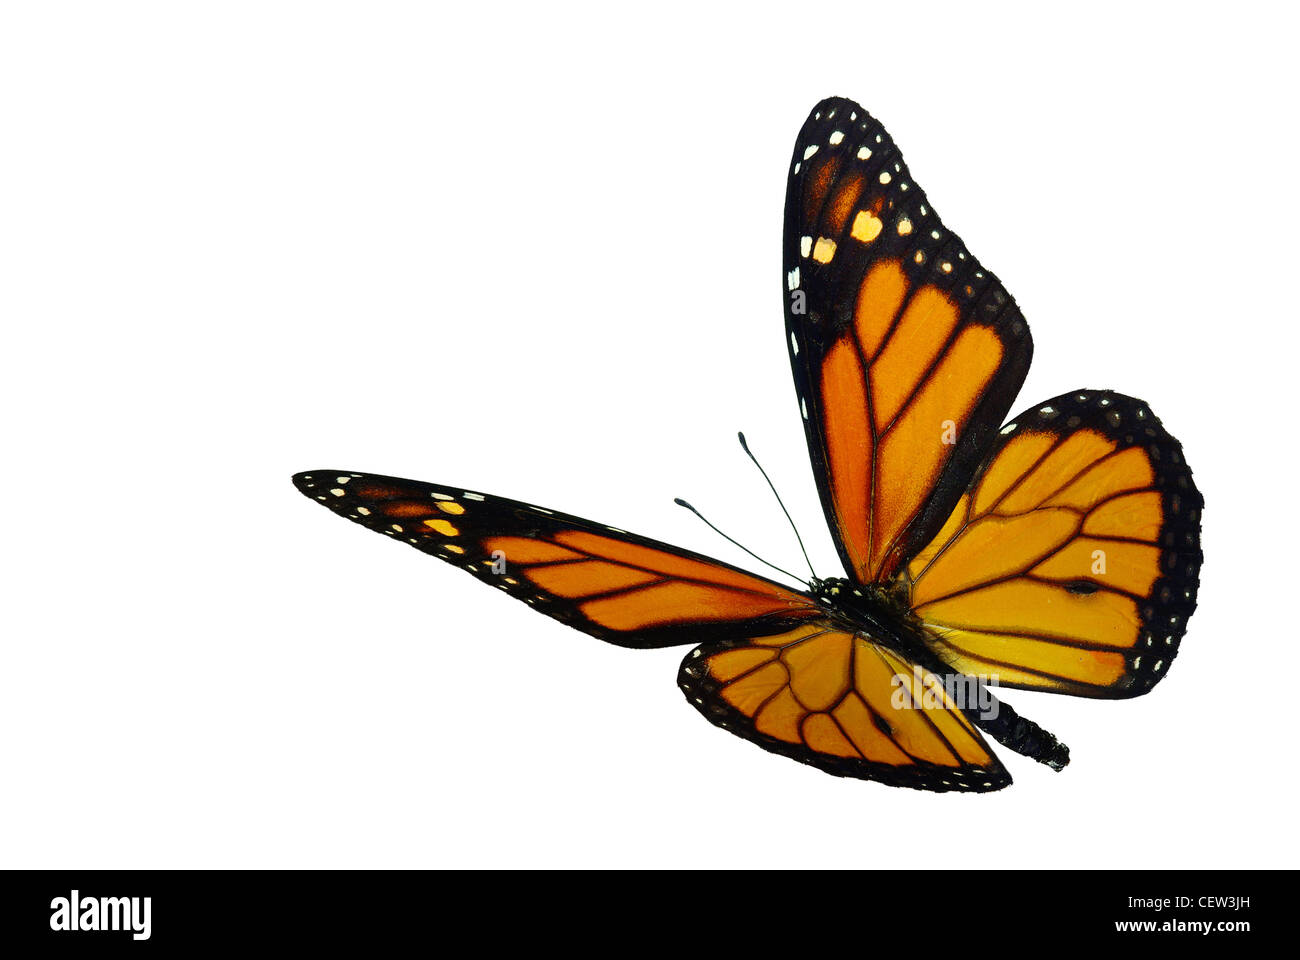 Monarch (Danaus plexippus), a migrant butterfly - Stock Image